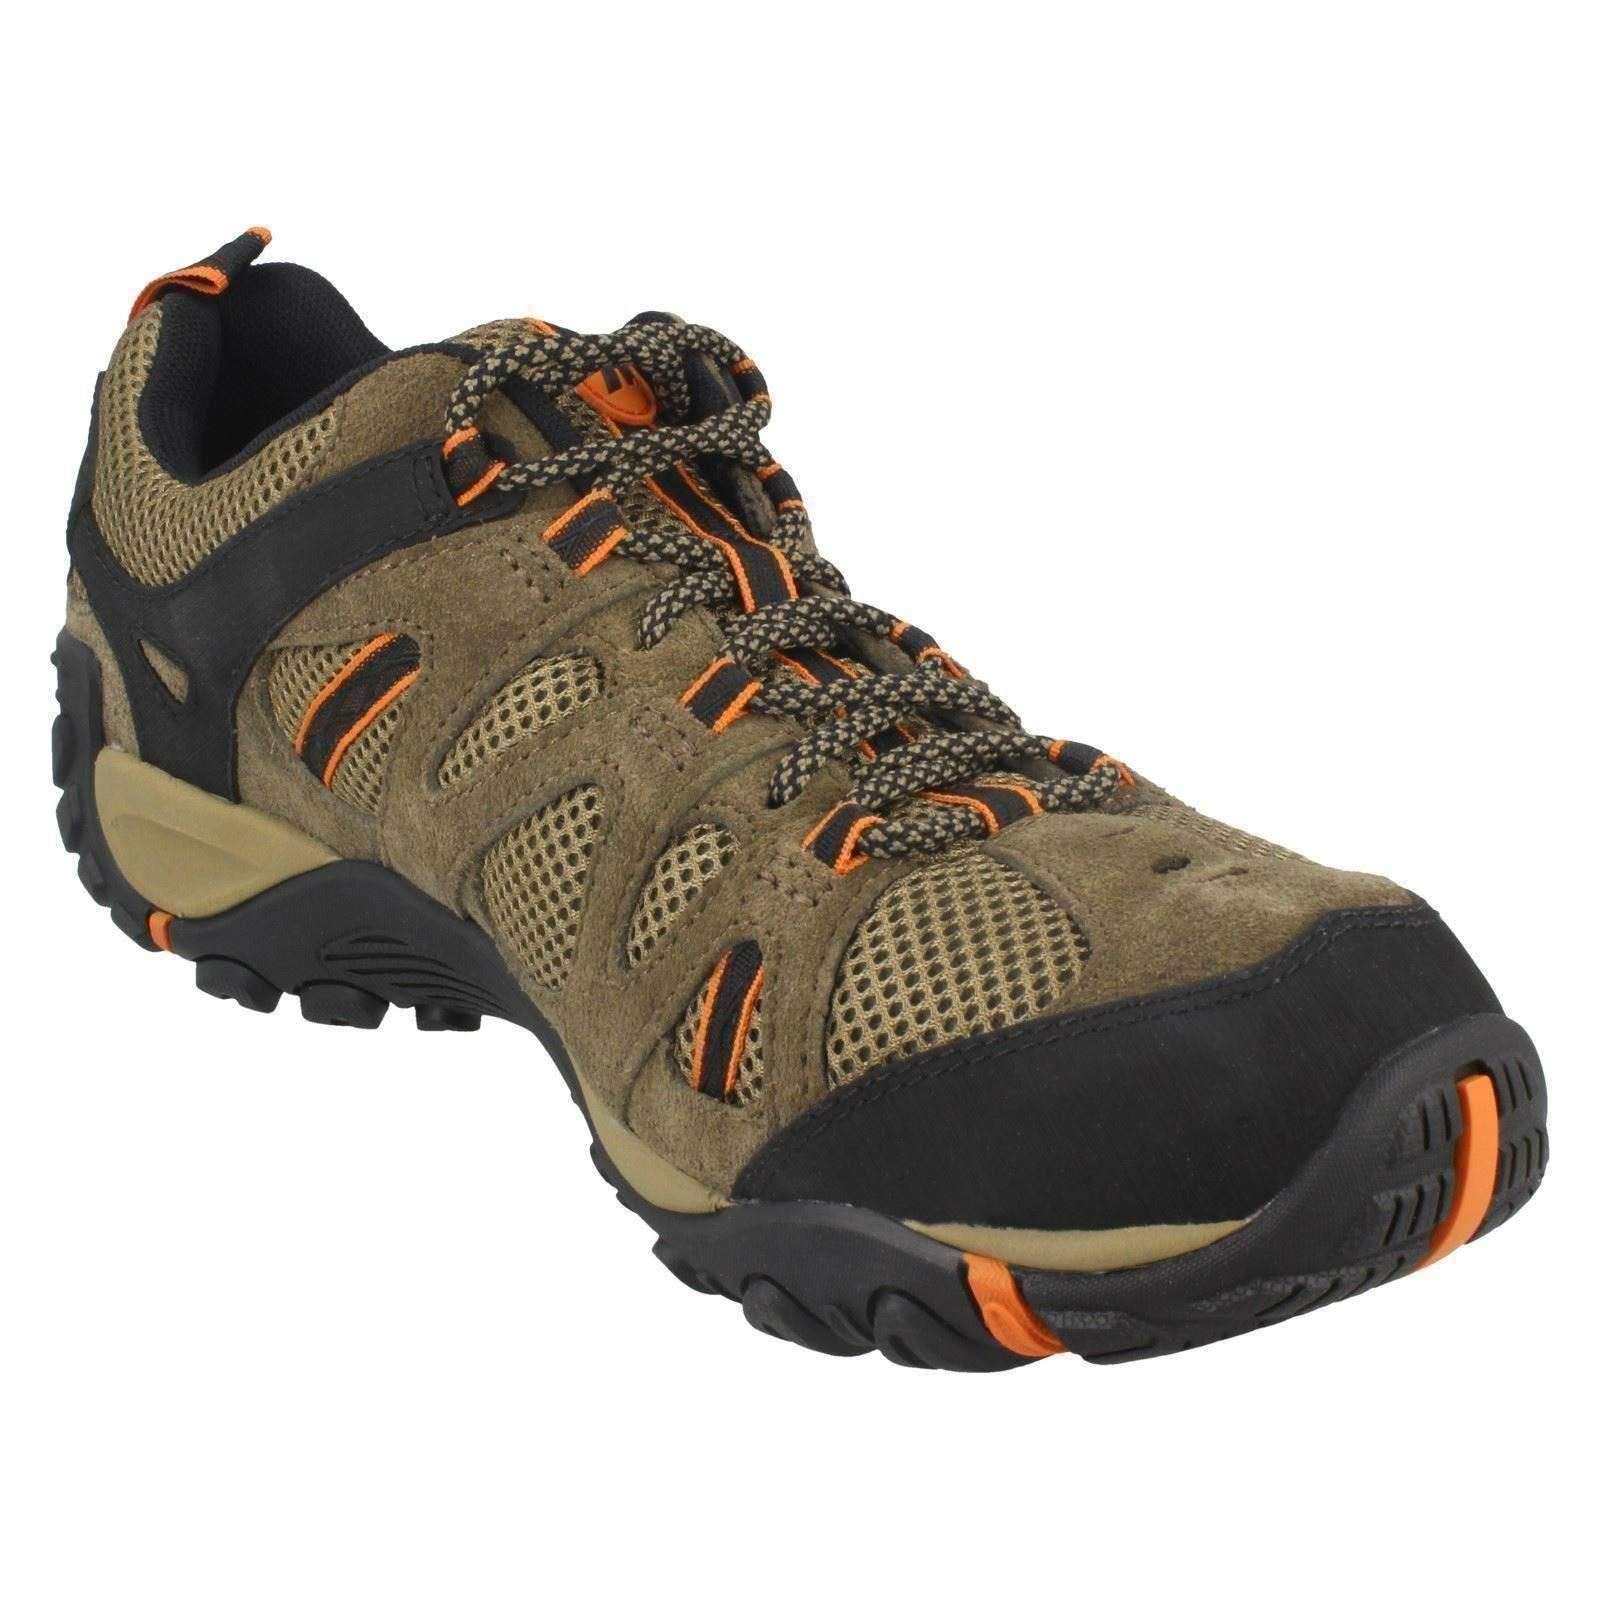 volume large search for latest search for latest Details about Mens Merrell Walking Shoes 'Yokota Ascender Vent J343718C'